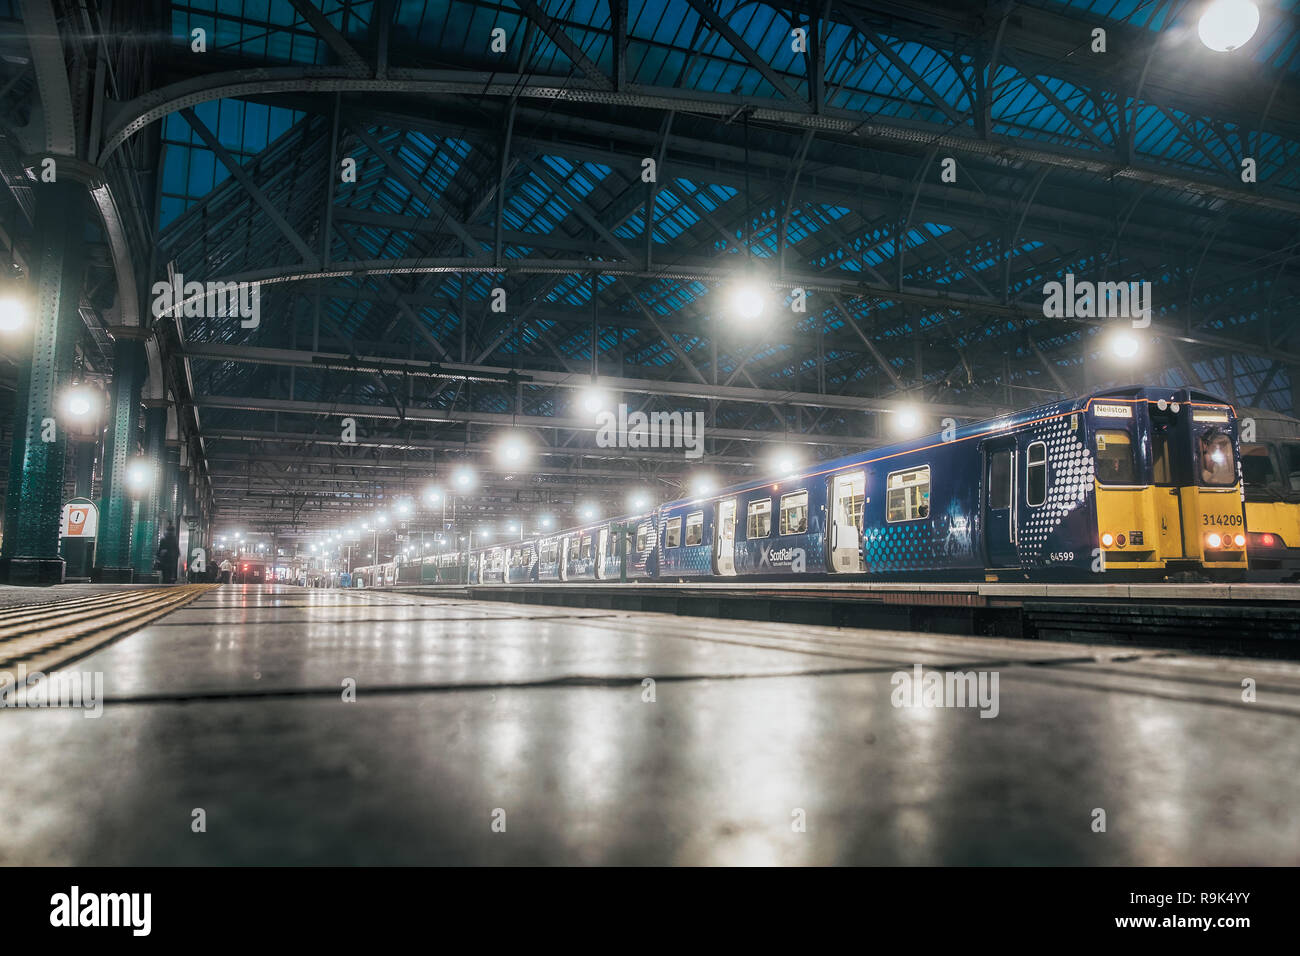 Glasgow central railway station. View from the lowest point on the station building and the train. Cold weather. Historic railway station and perspect - Stock Image